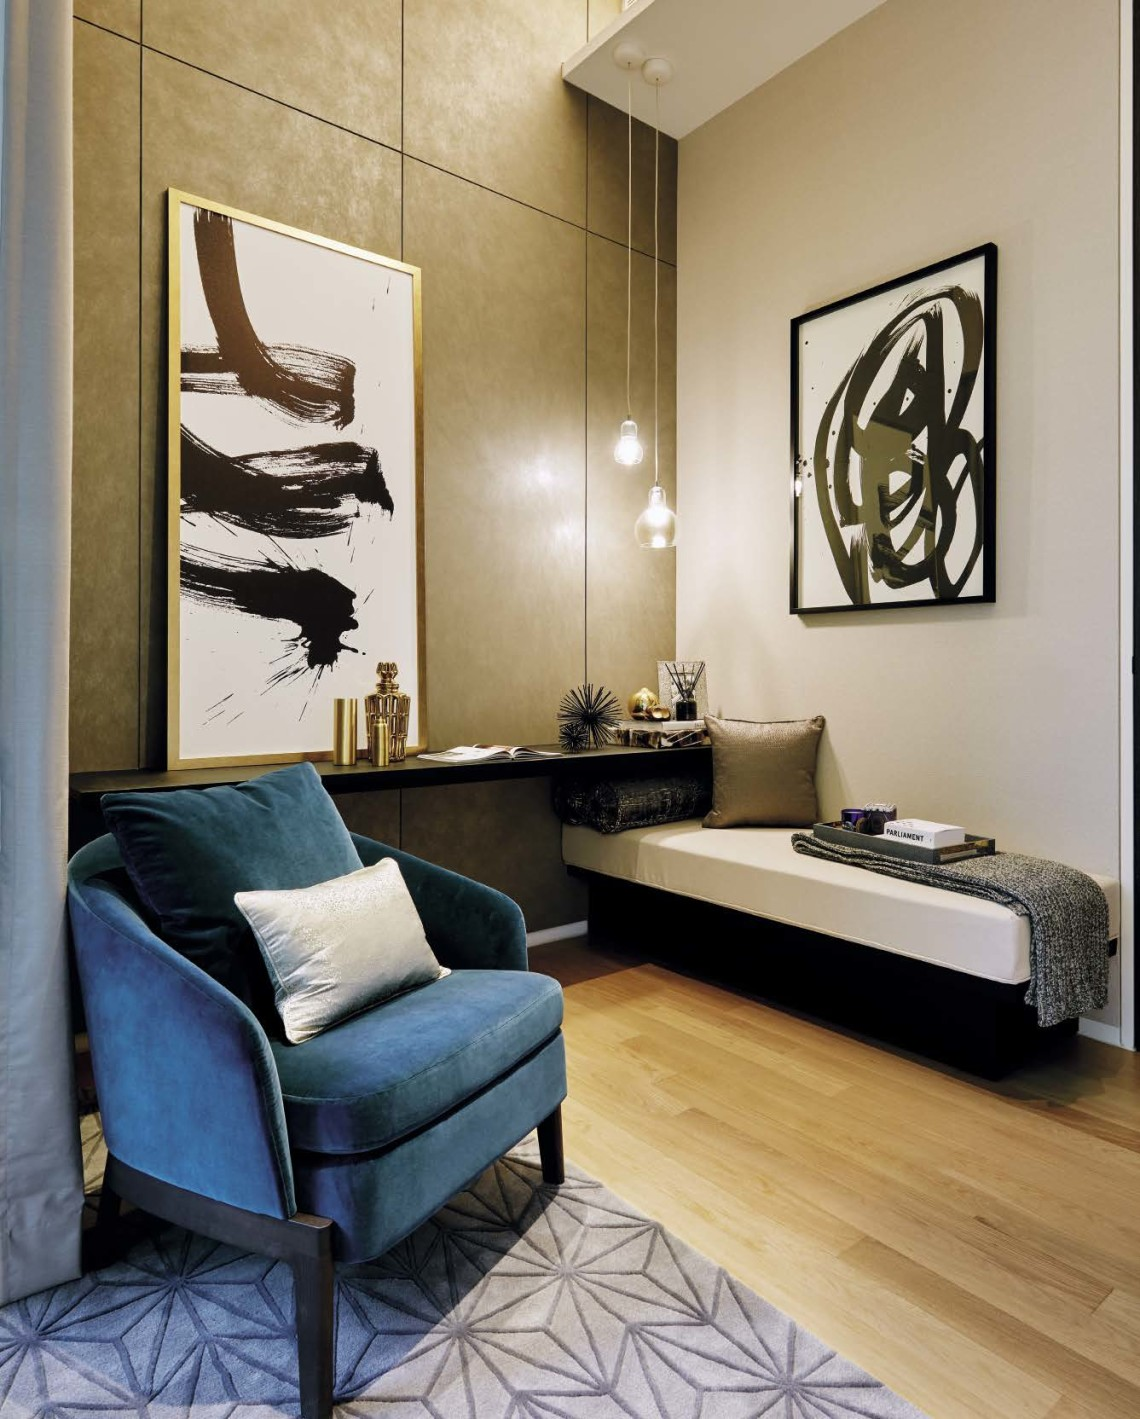 The sitting area in the master bedroom is a  cosy corner for the homeowners to retreat to, before bed.